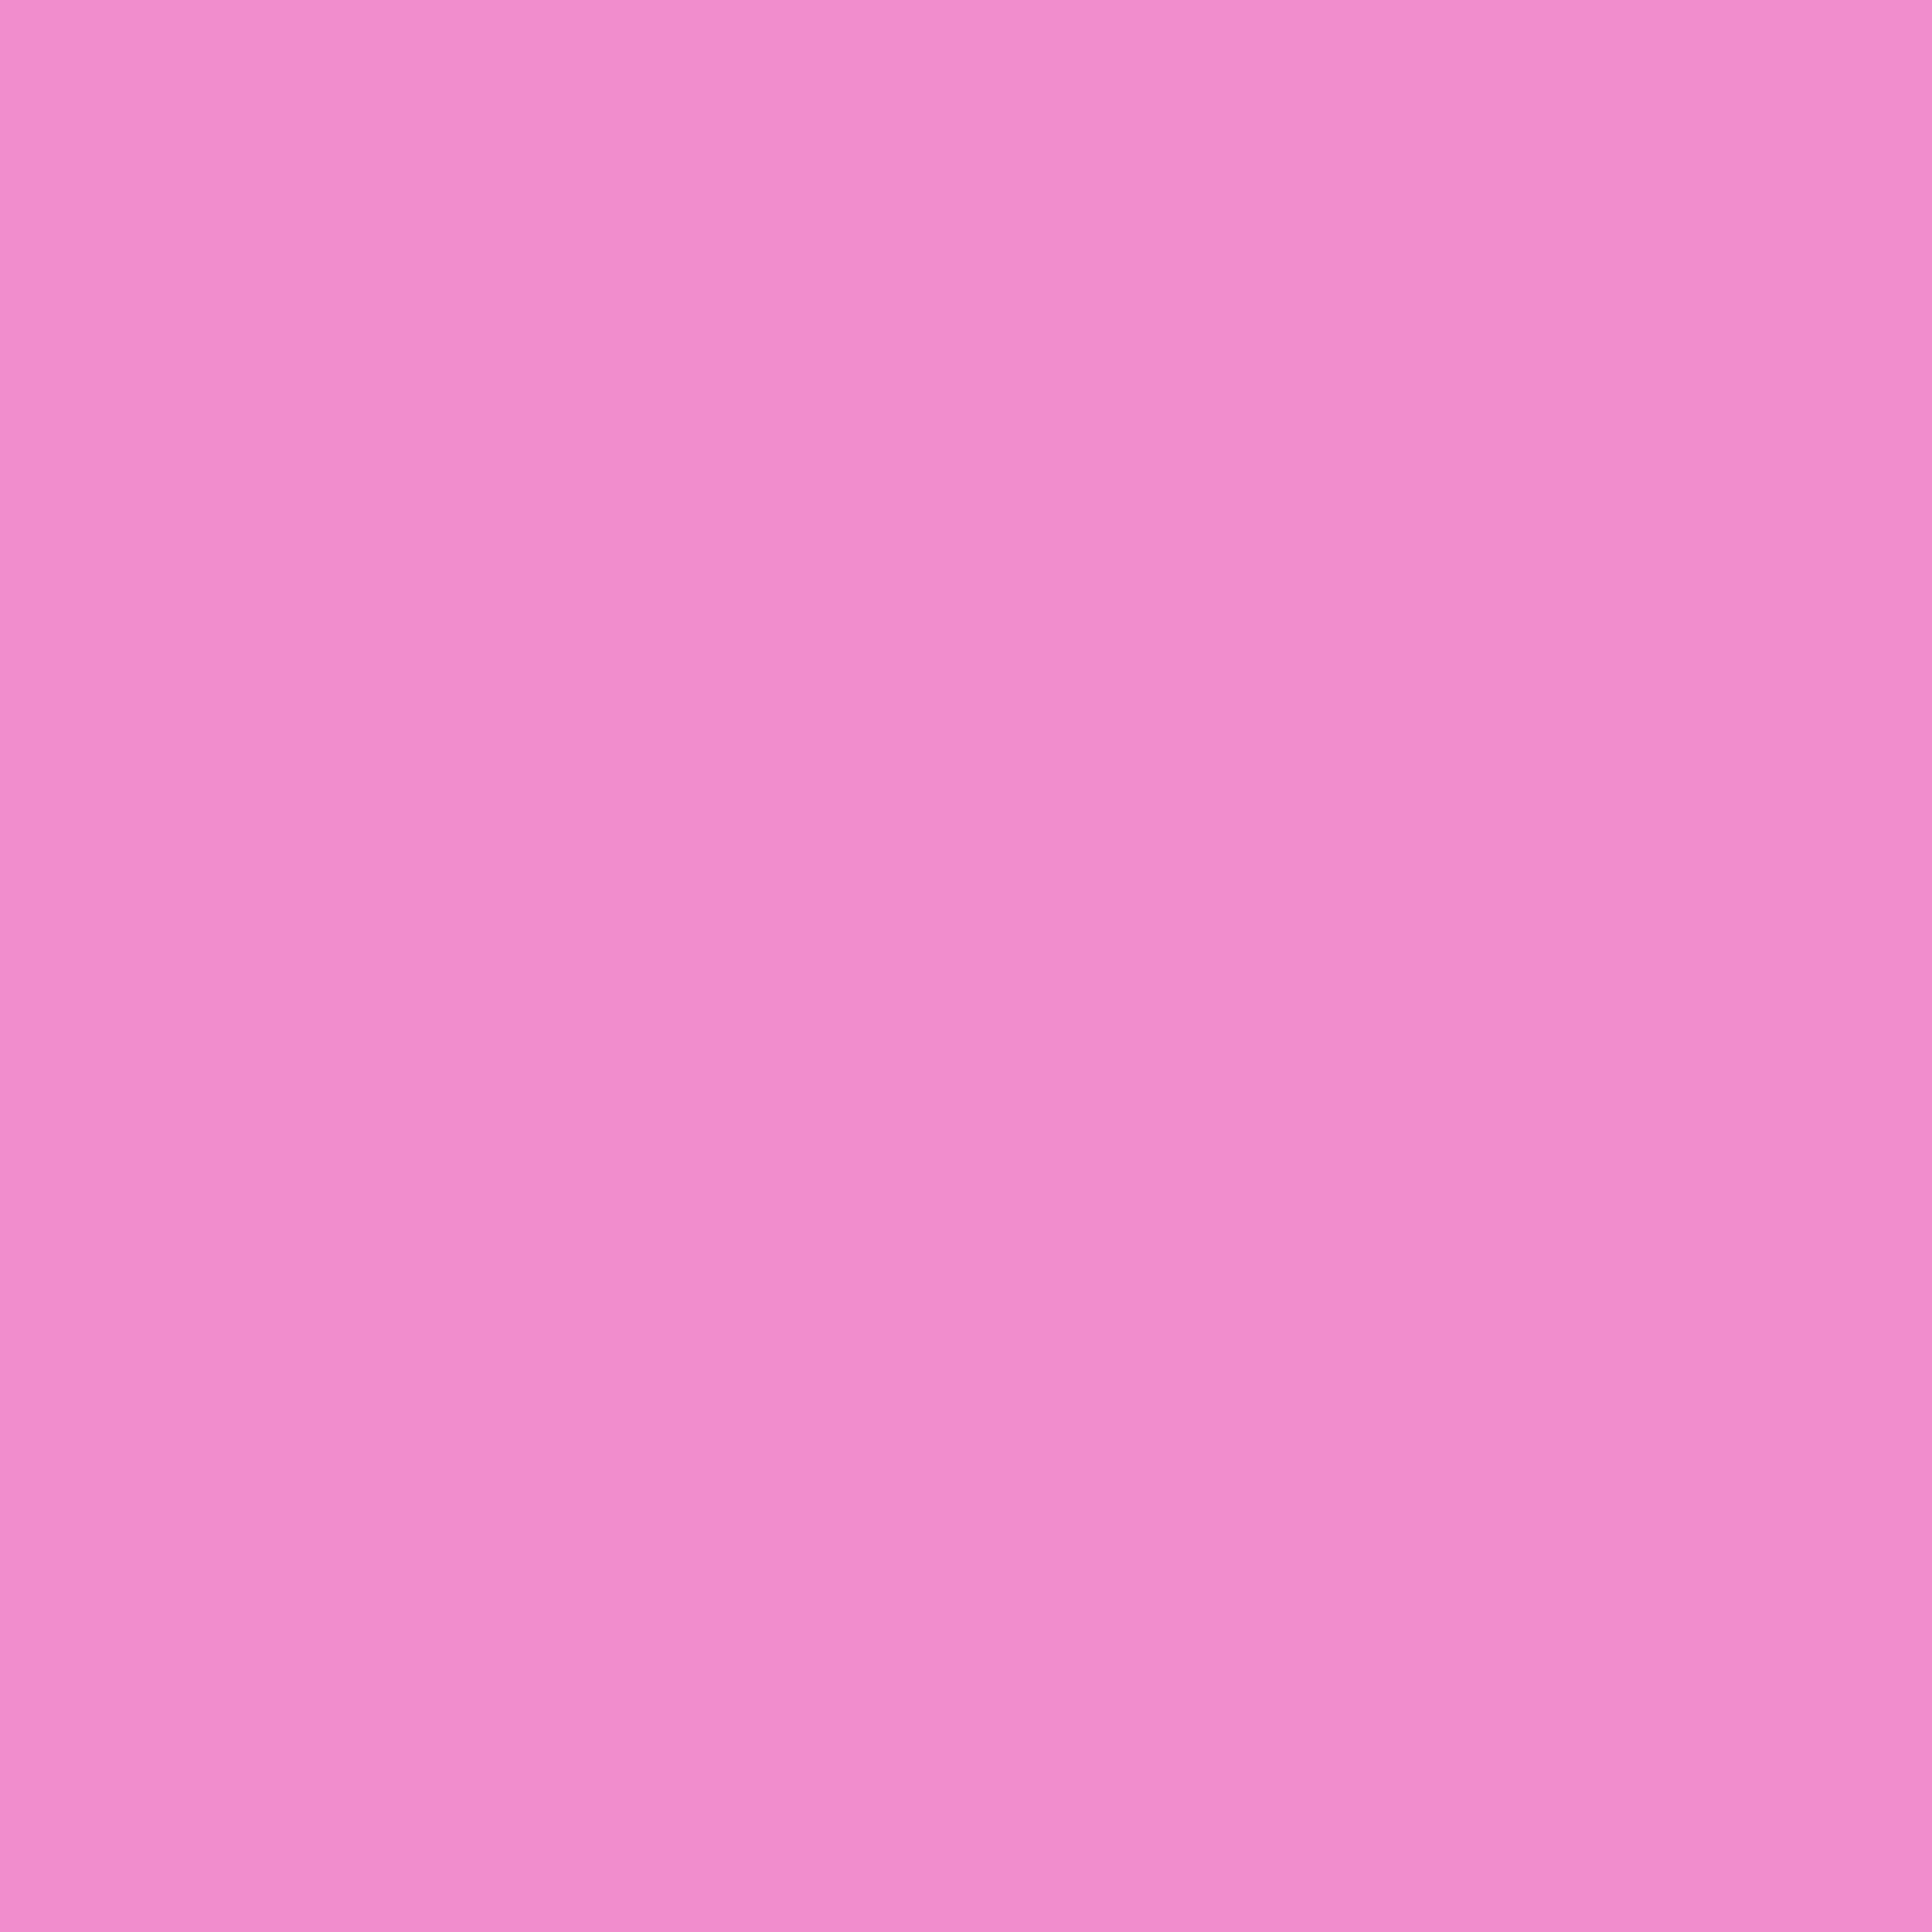 2048x2048 Orchid Pink Solid Color Background